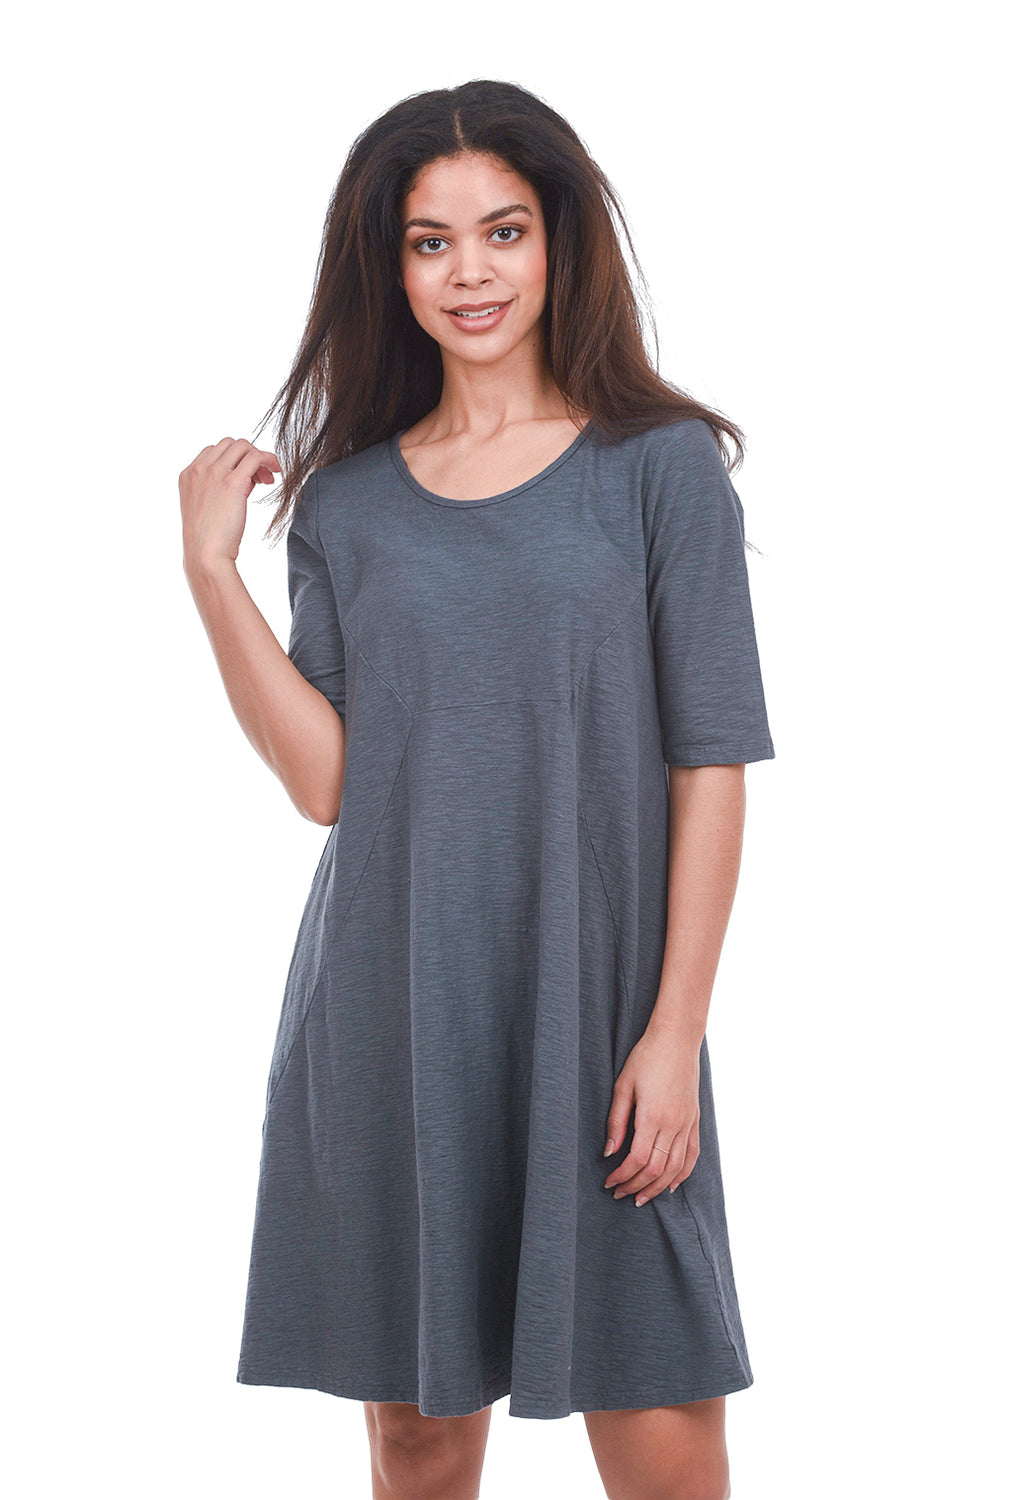 Cut Loose LJ Elbow-Sleeve Tunic, Iron Gray